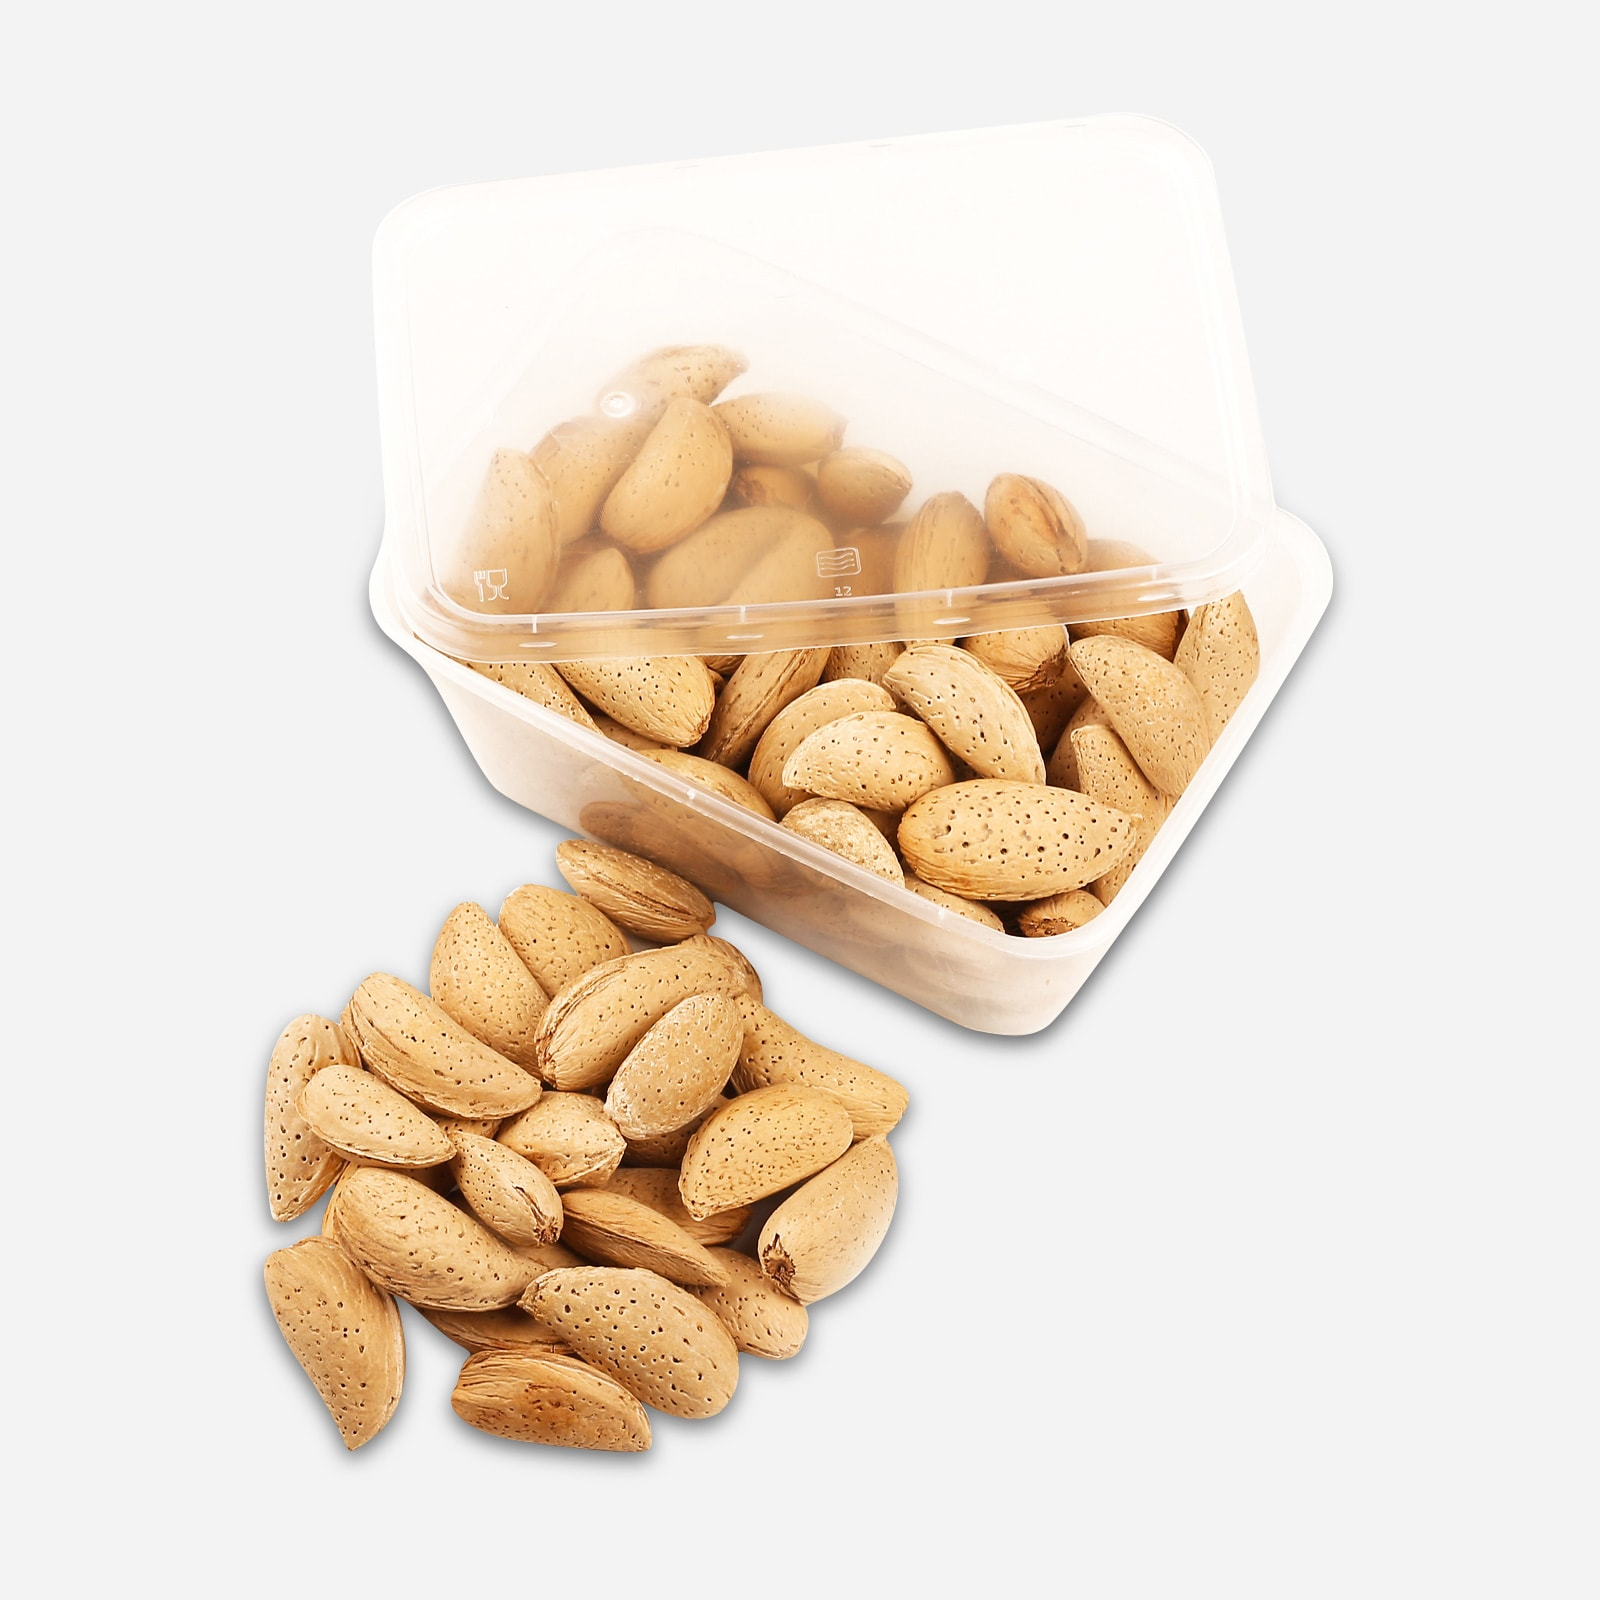 almonds-with-shell